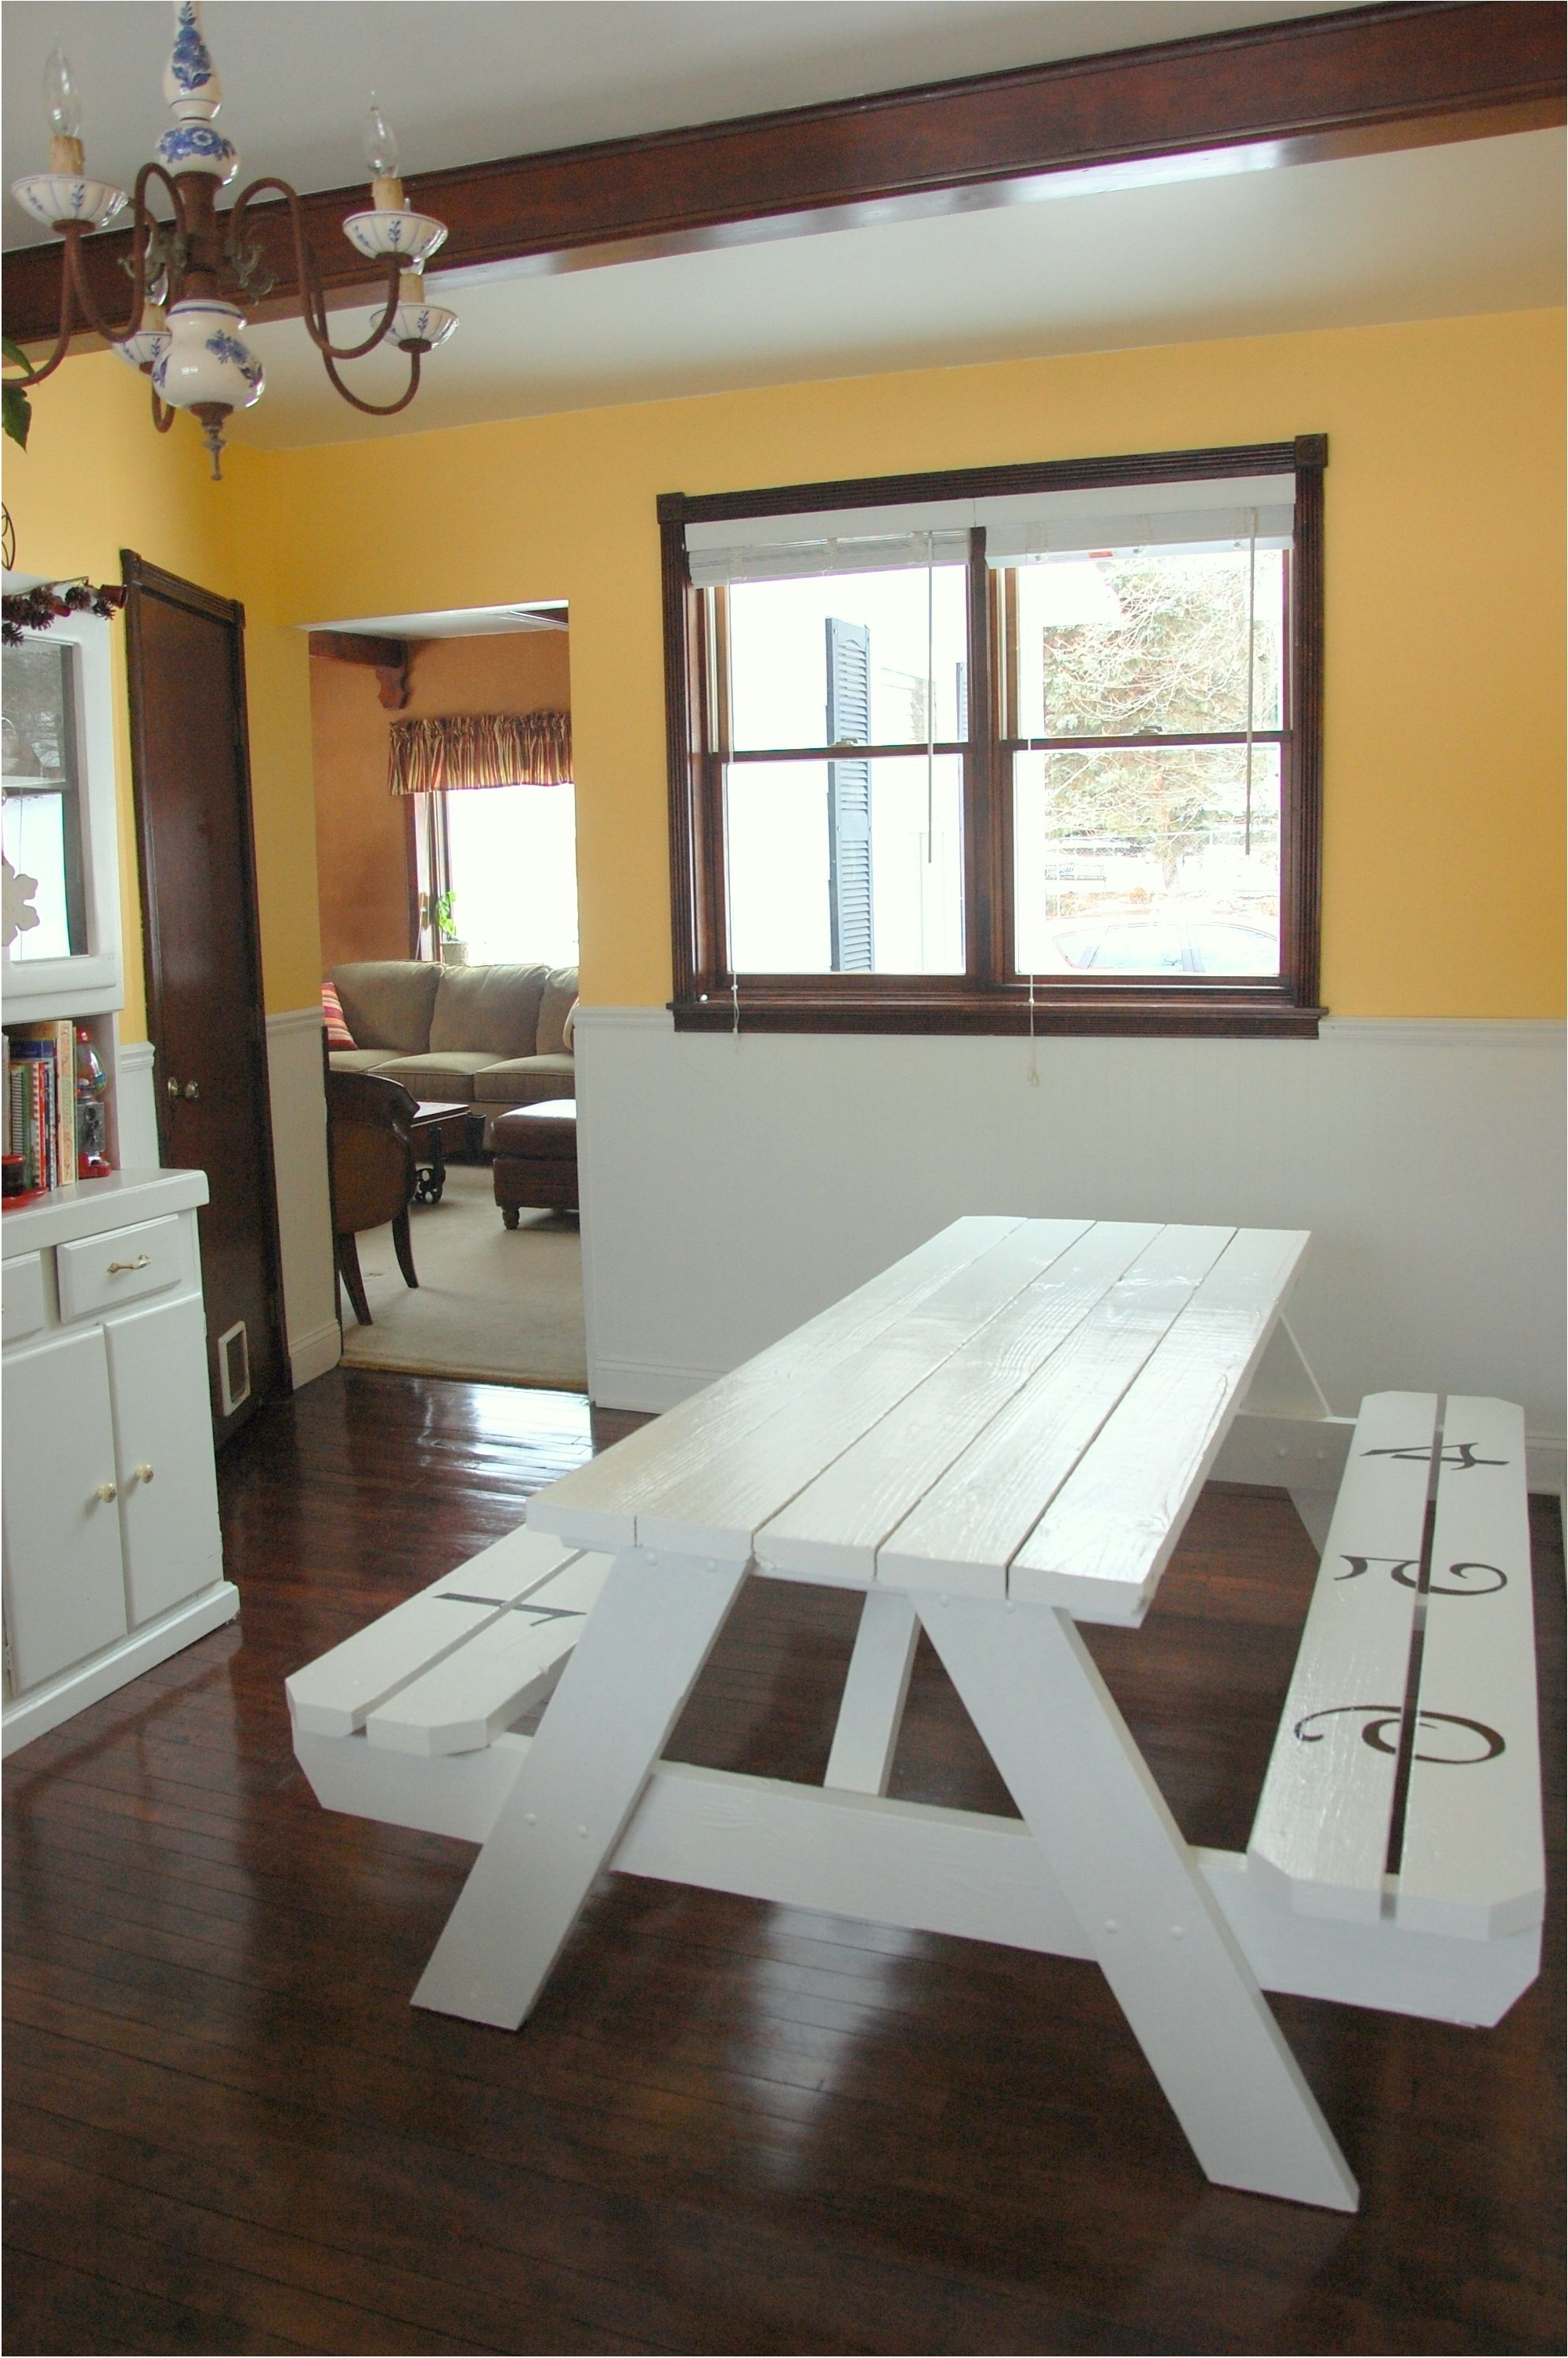 Indoor Picnic Style Dining Tables For Famous Delightful Best 32 Indoor Picnic Table Ideas For A Relaxed Feel For (View 8 of 25)